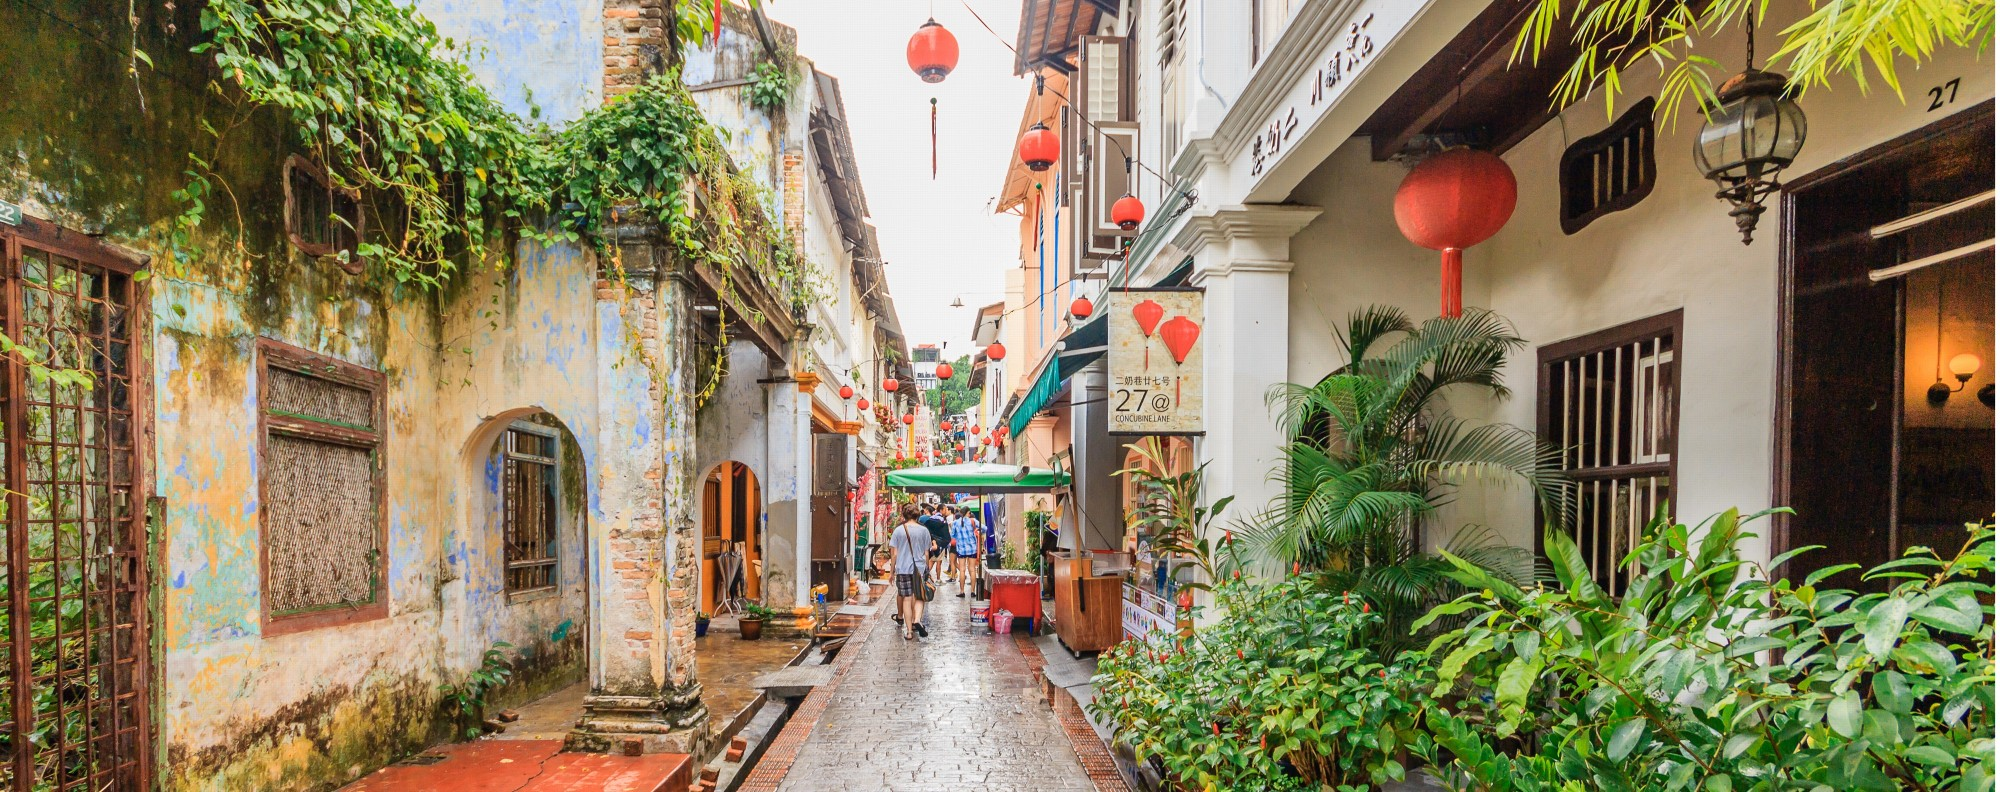 Concubine Lane is one of Ipoh's prettiest streets.